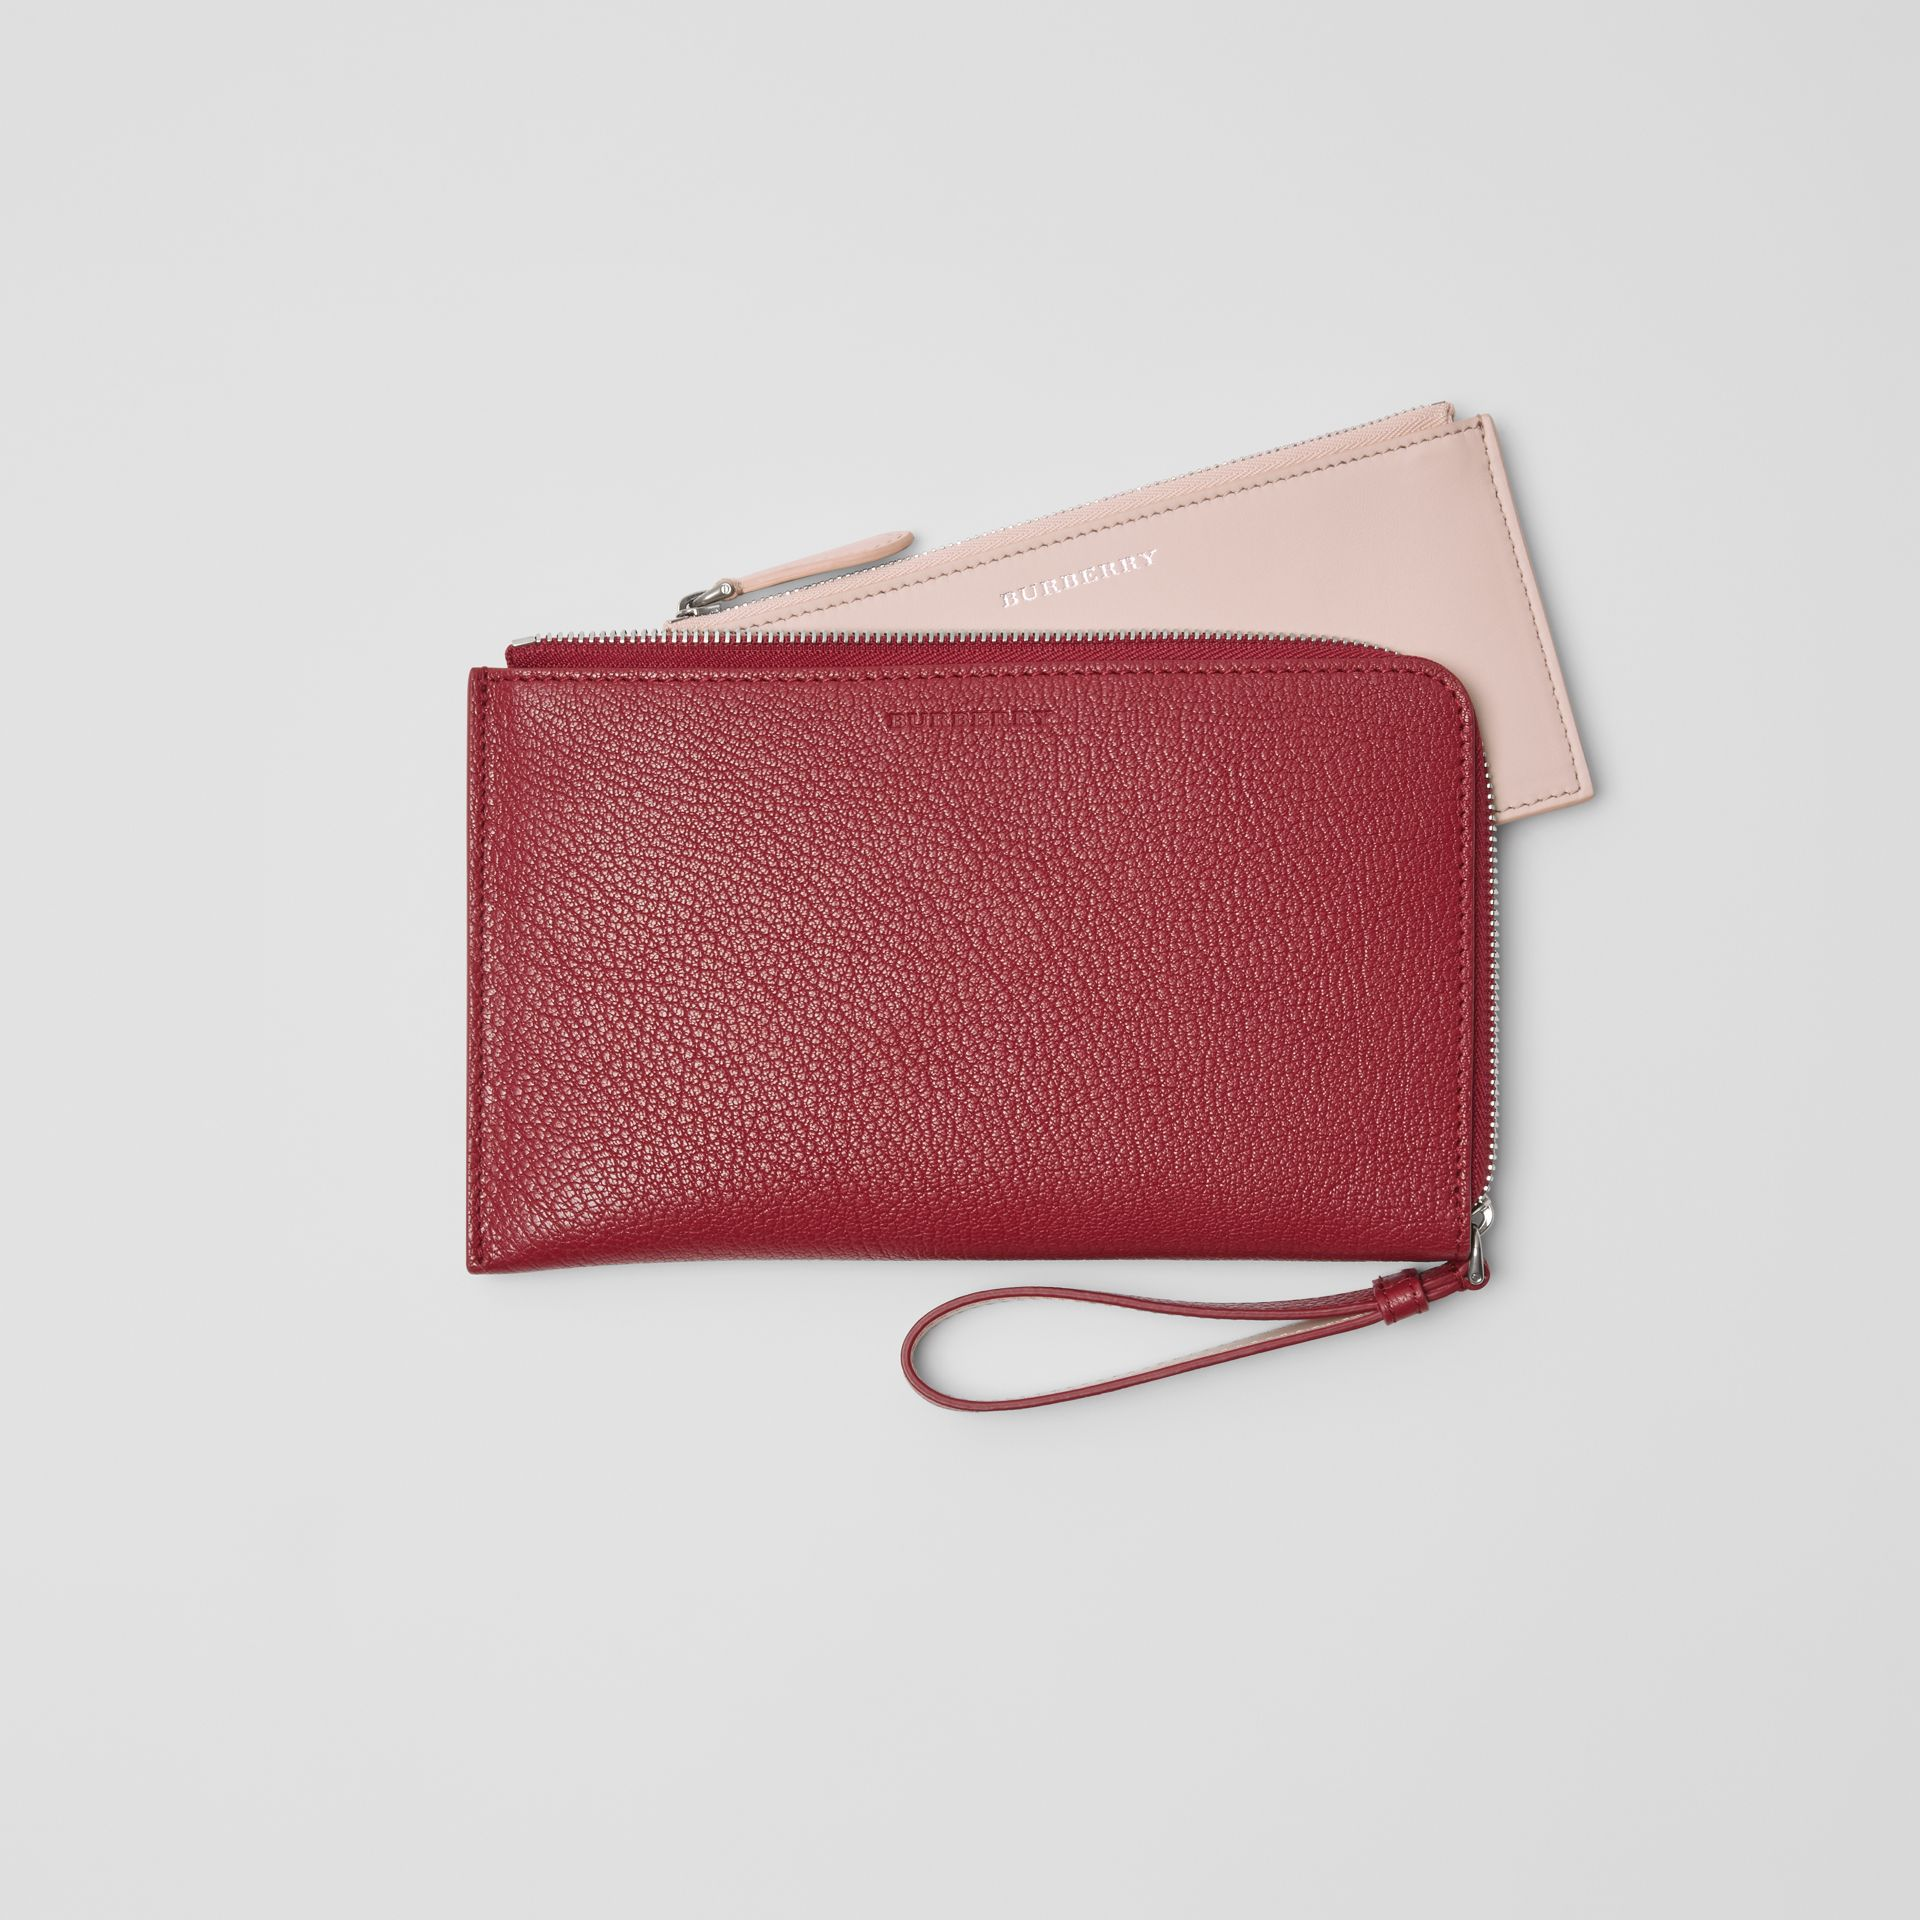 Two-tone Grainy Leather Travel Wallet in Crimson - Women | Burberry - gallery image 5